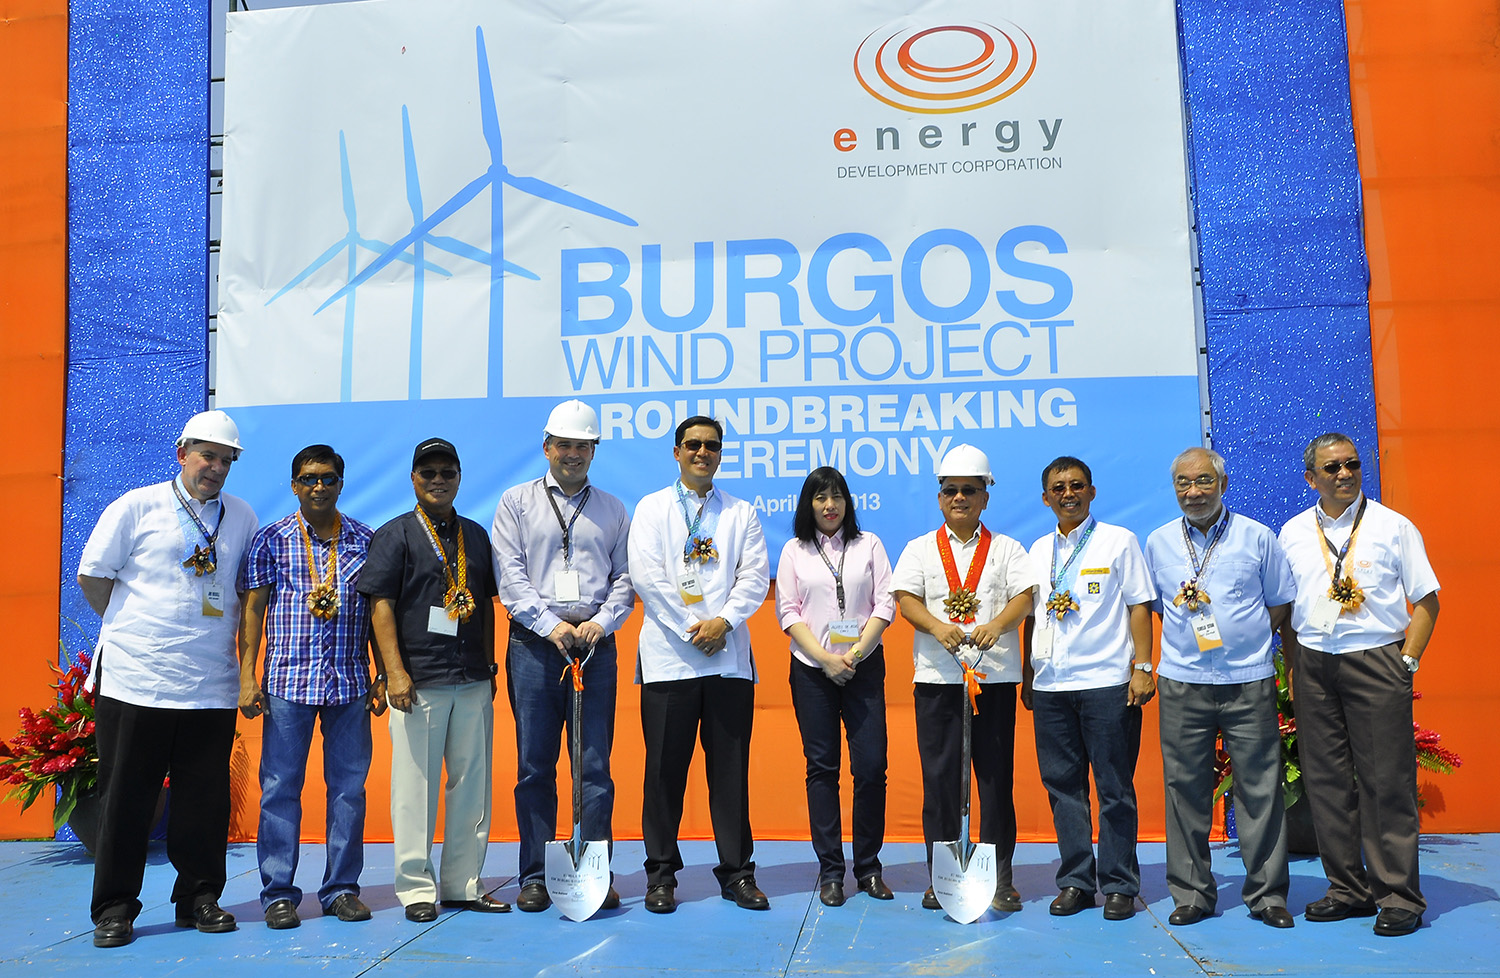 Energy Development Corporation's Burgos wind project is Asia-Pacific Renewables Deal of the Year